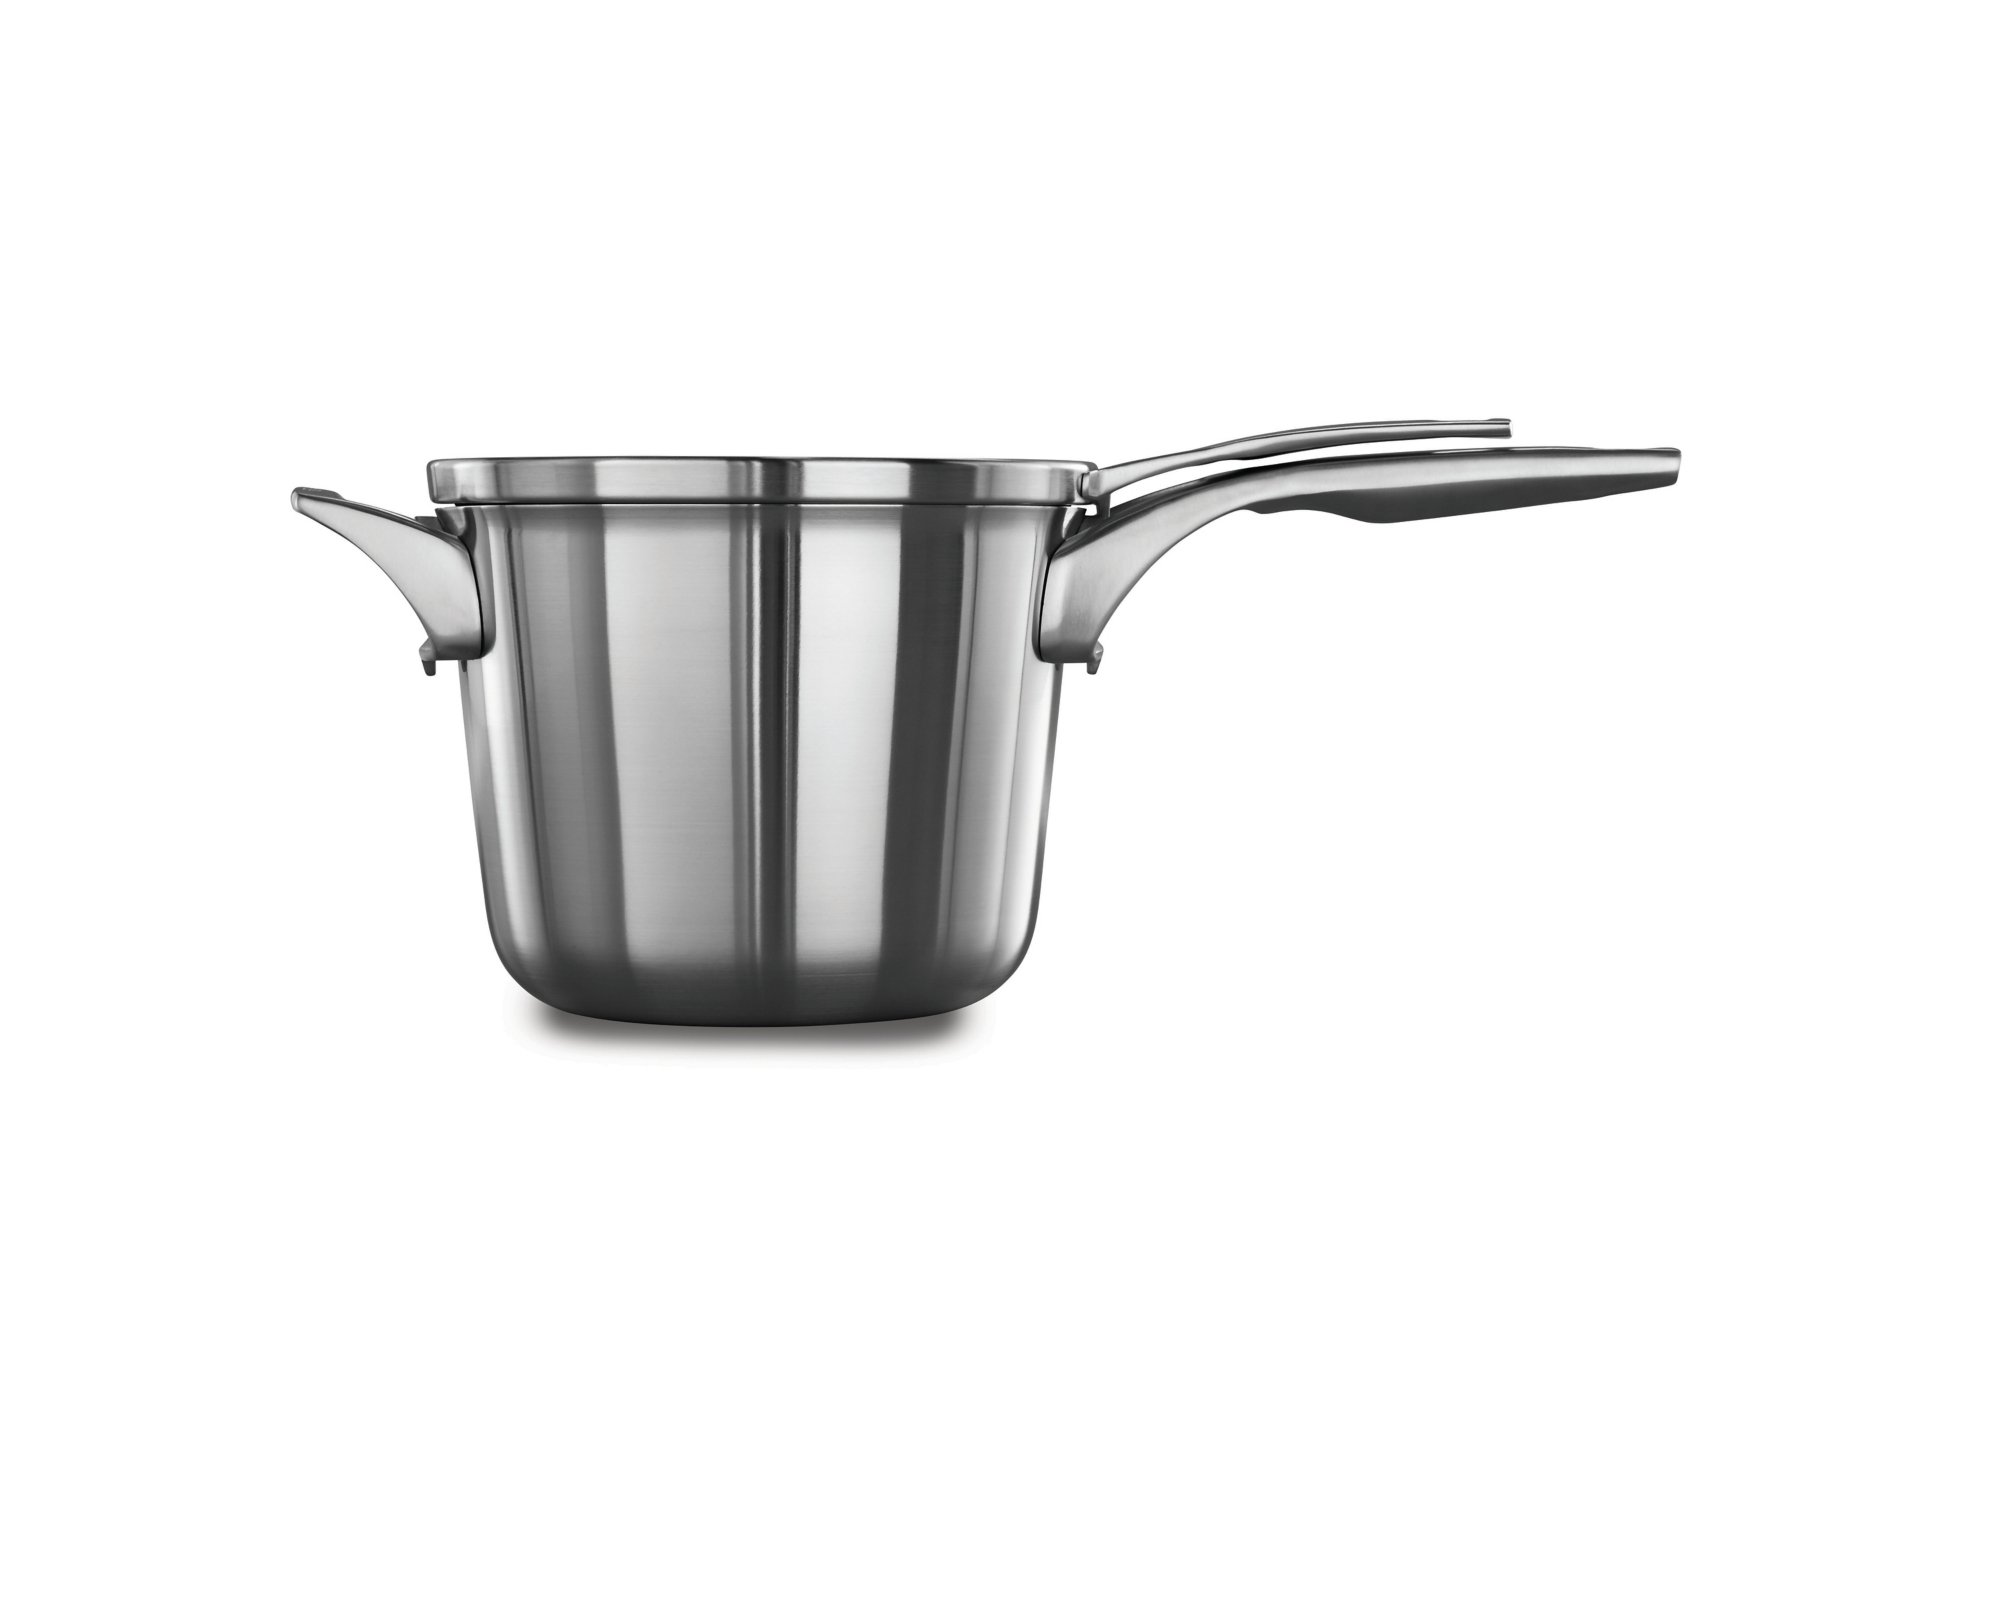 Calphalon Premier? Space Saving Stainless Steel 4.5 qt. Sauce Pan with Cover